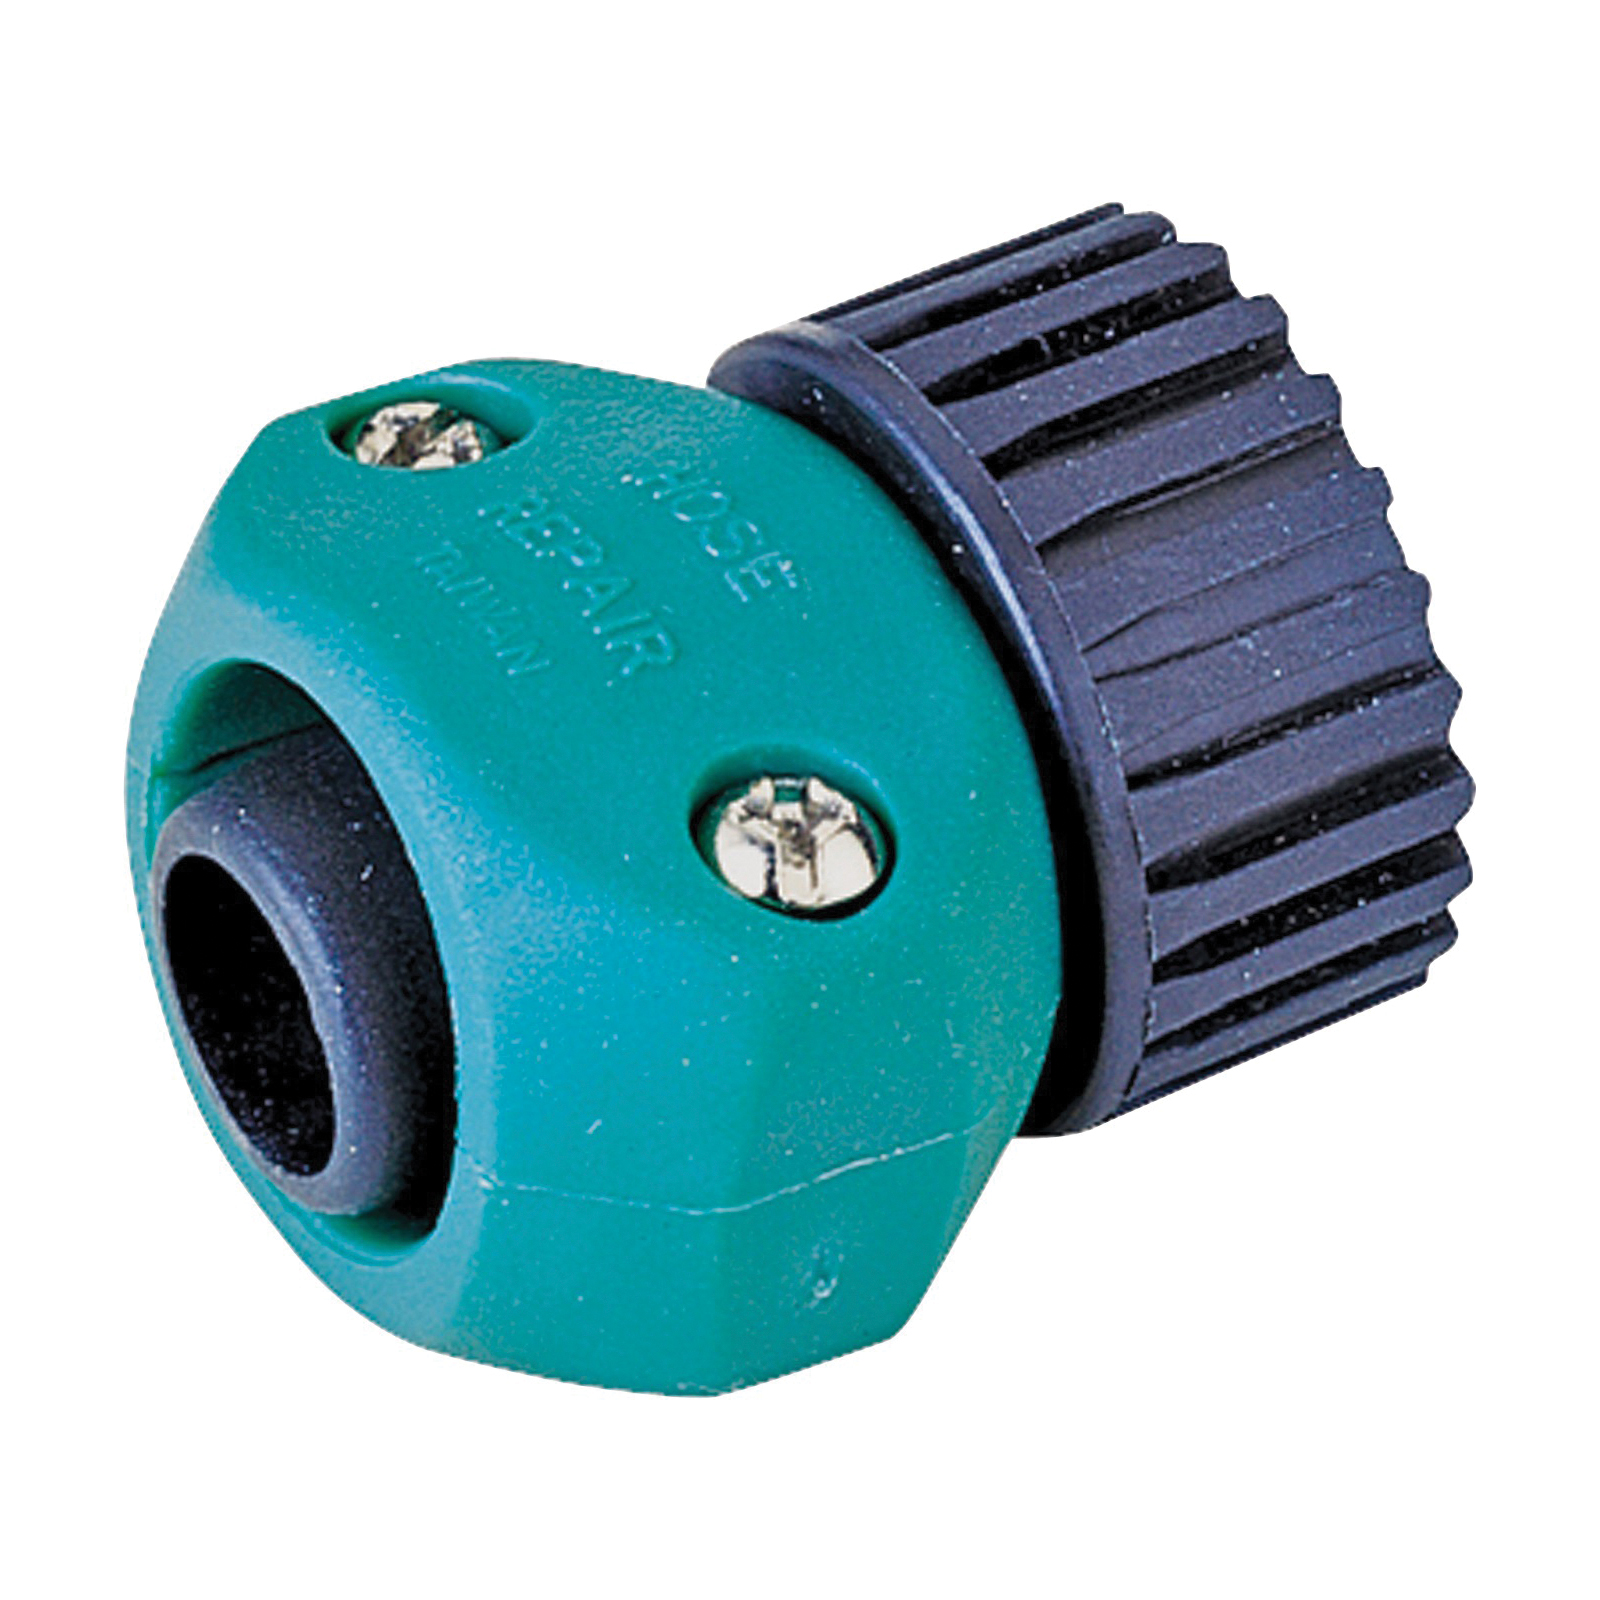 Picture of Landscapers Select GC5303L Hose Coupling, 5/8 to 3/4 in, Female, Plastic, Green and Black